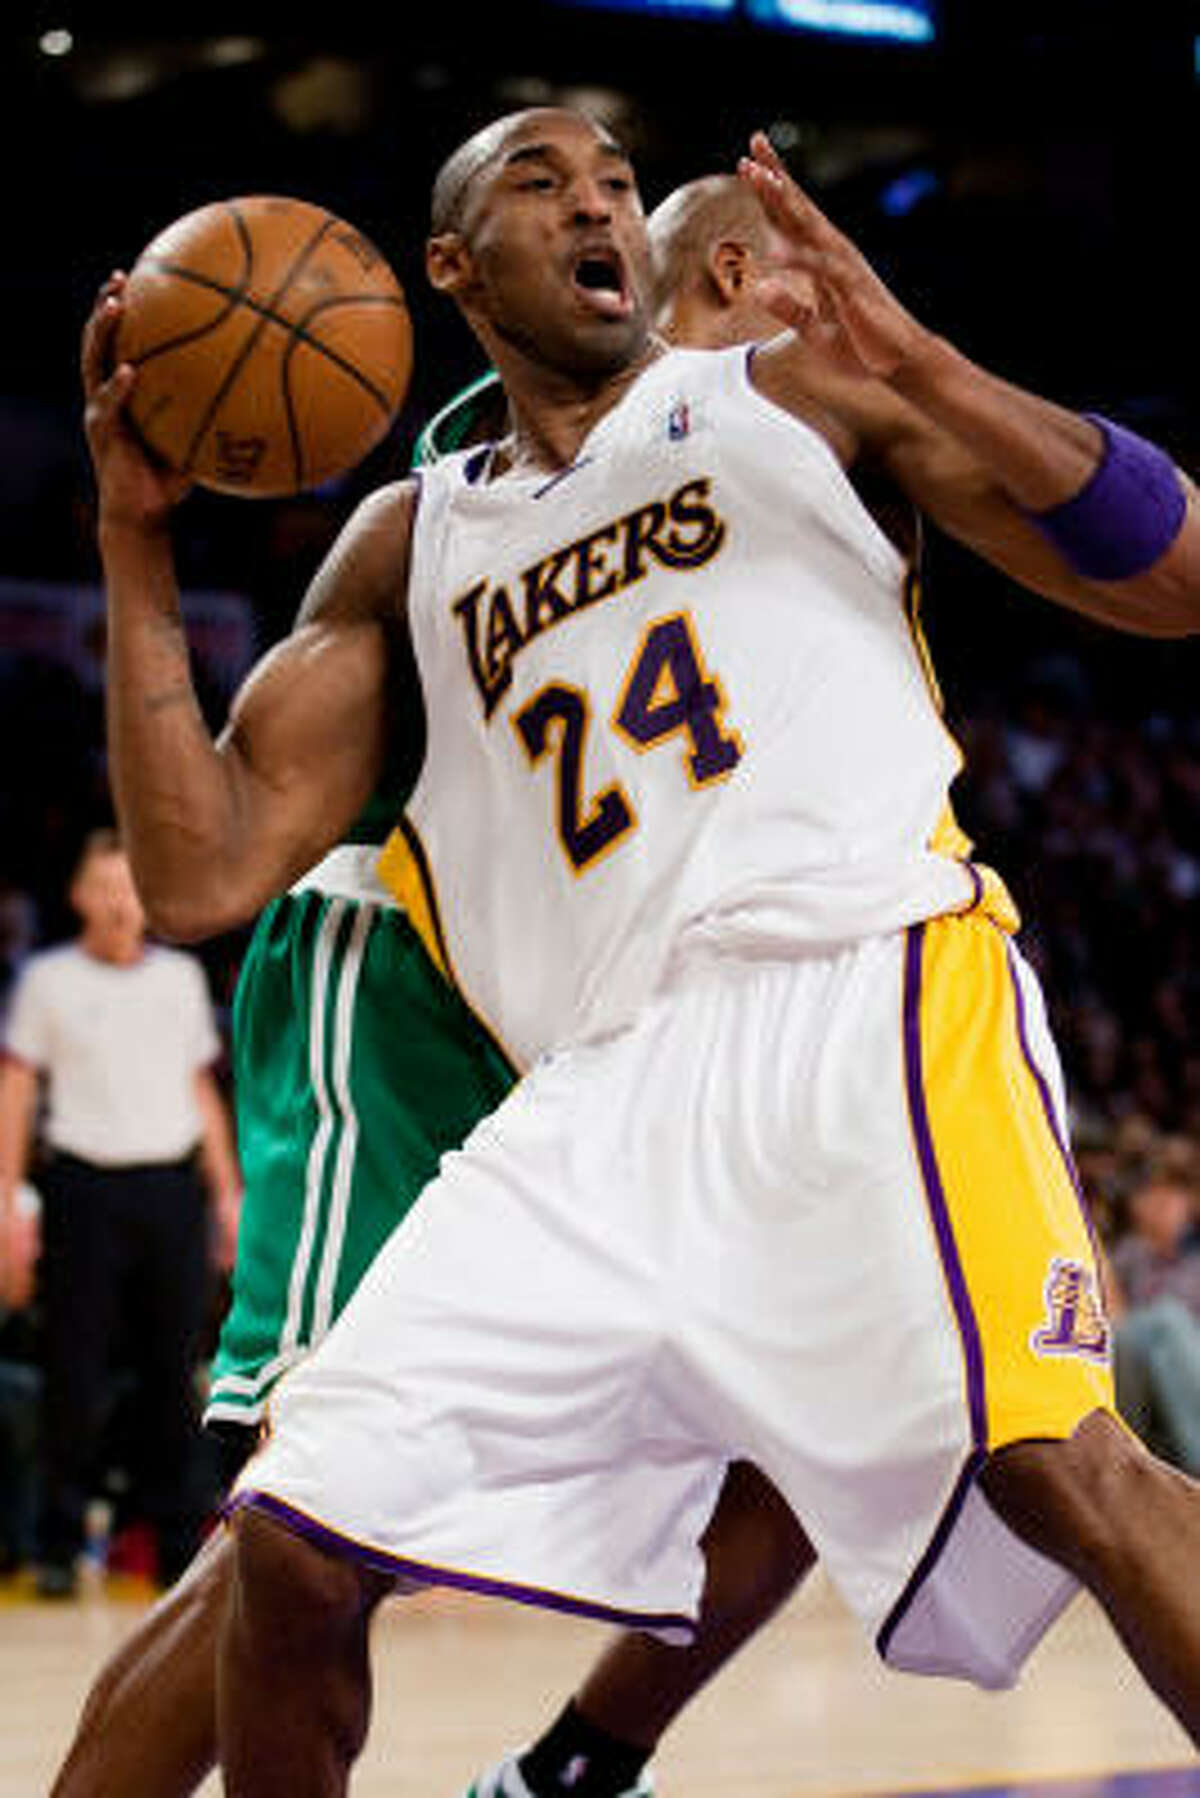 Kobe Bryant, seen here in the 2008 NBA finals against the Celtics, had 27 points to help Los Angeles beat Boston 92-83 in their first meeting this season, which came on Christmas Day.